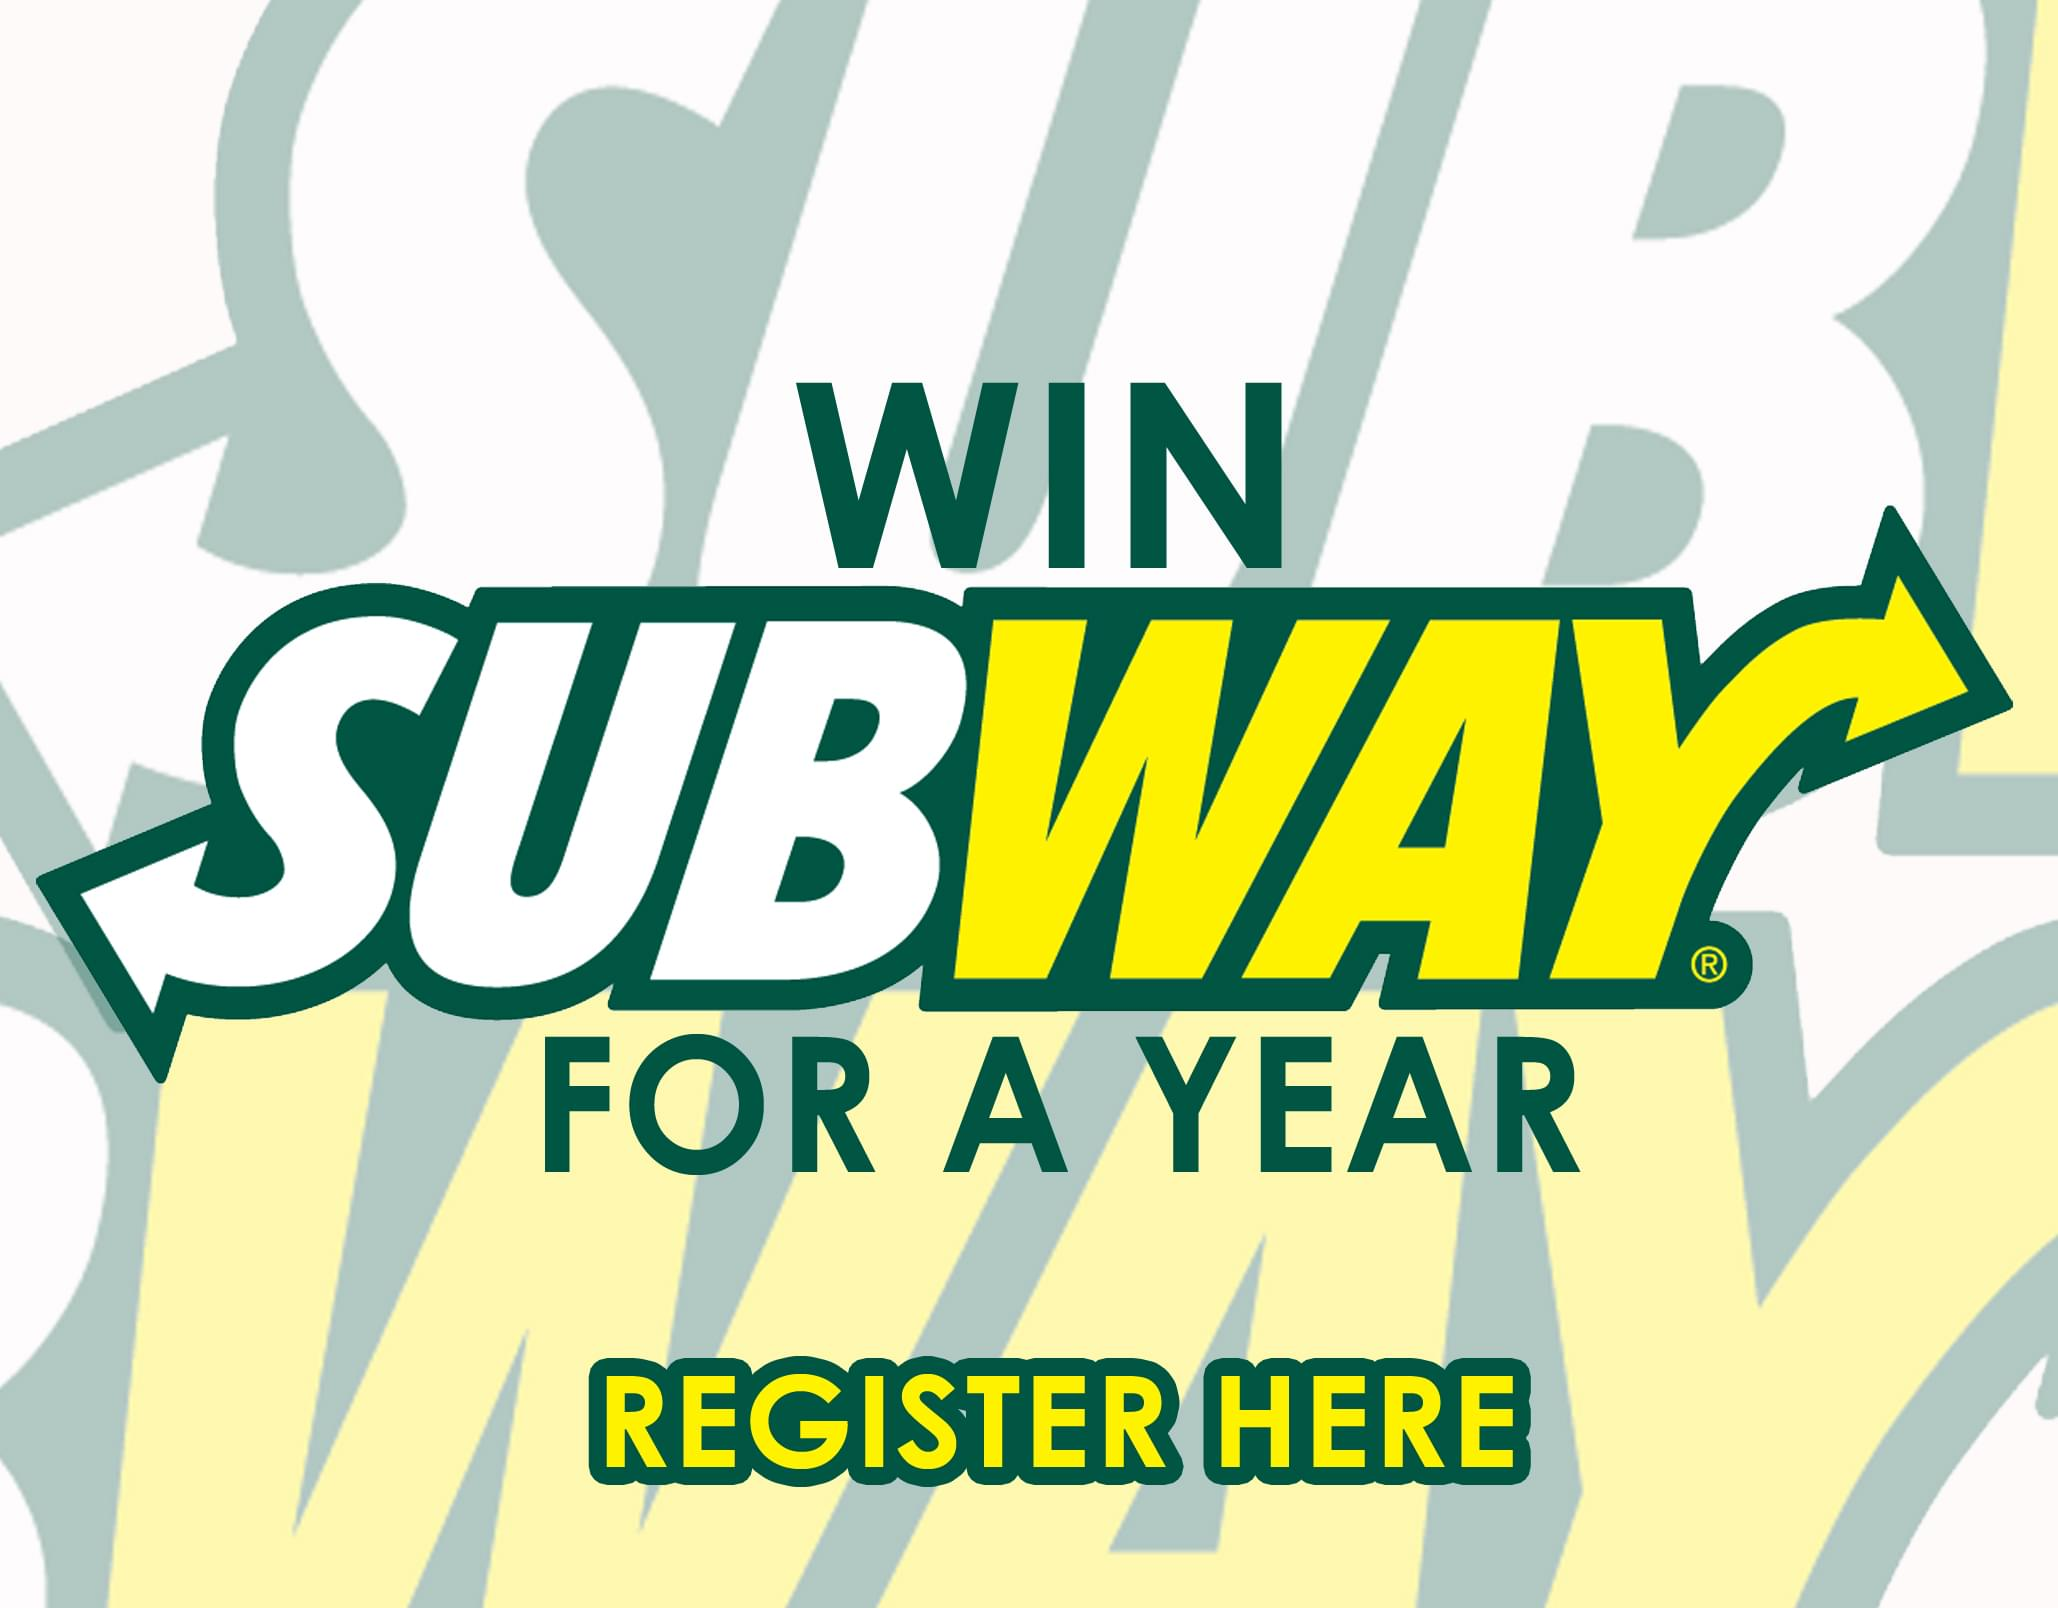 Win Subway for a YEAR!